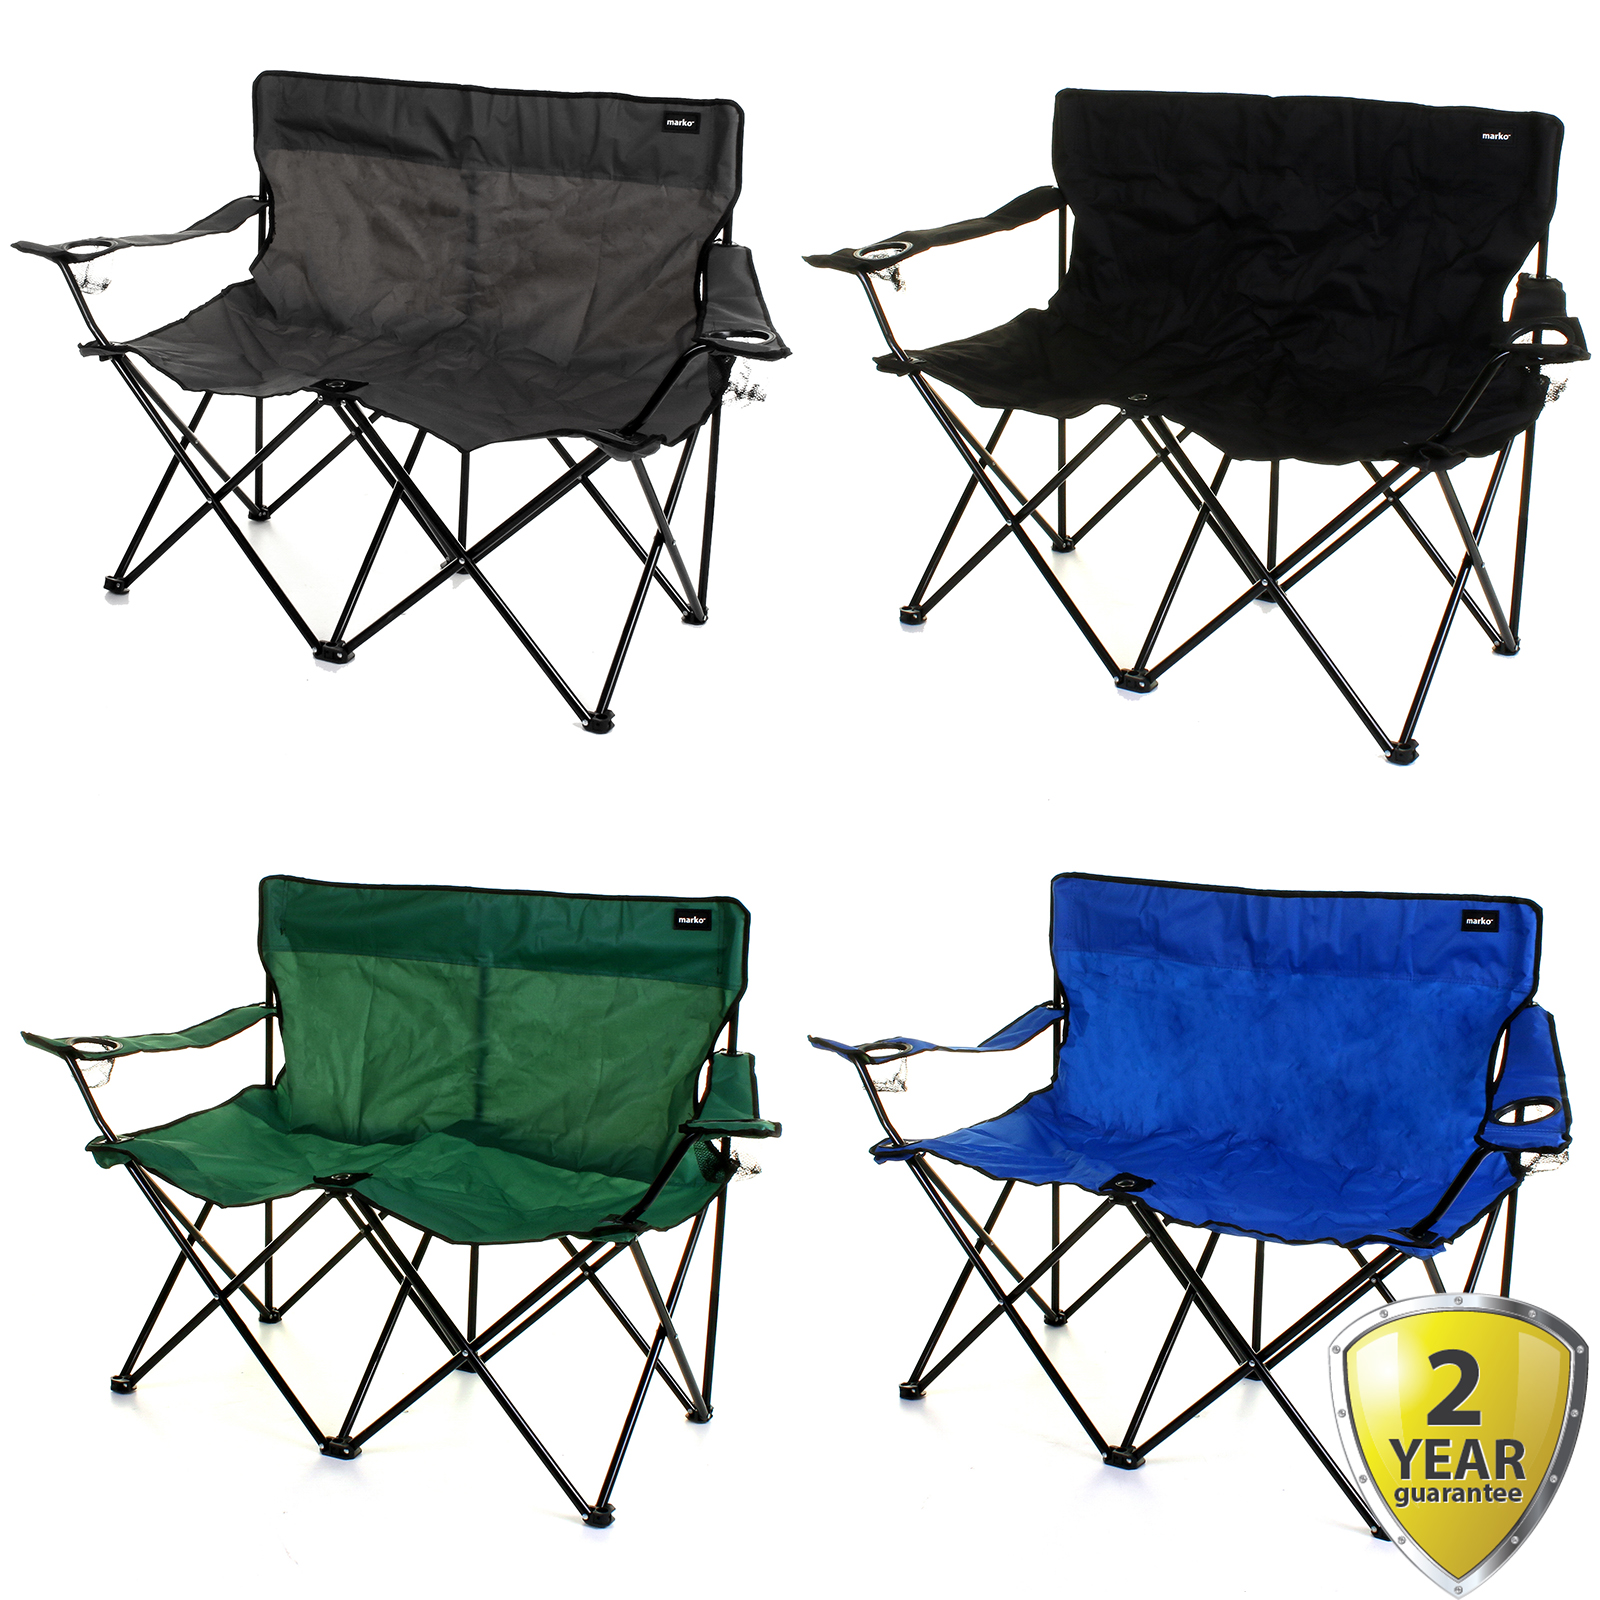 Double Camping Chair Details About 2 Seater Double Camping Chair Outdoor Folding Lightweight Portable Cup Holders